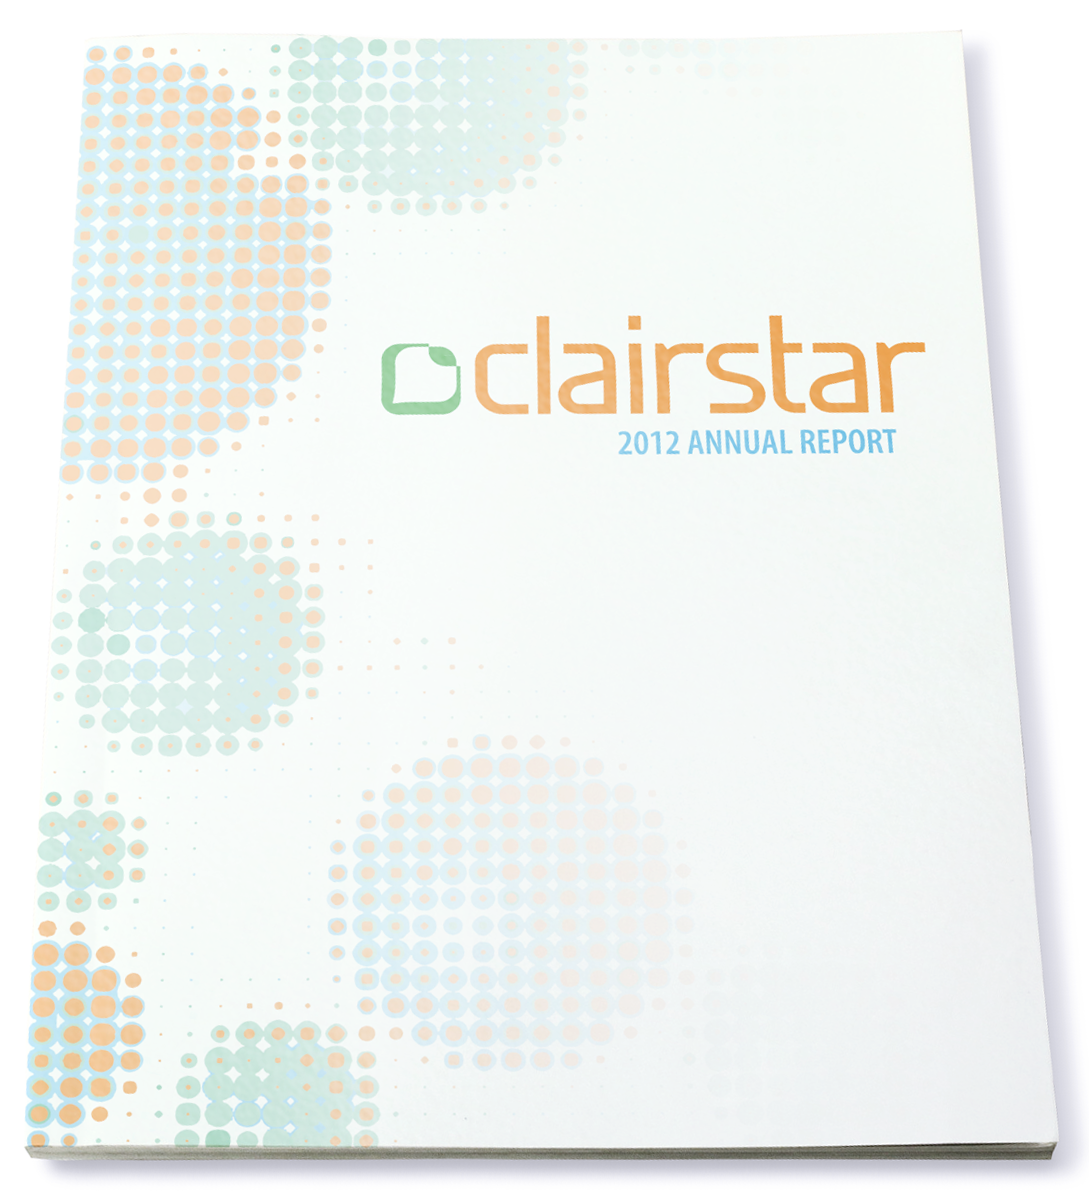 clairstar Annual Report